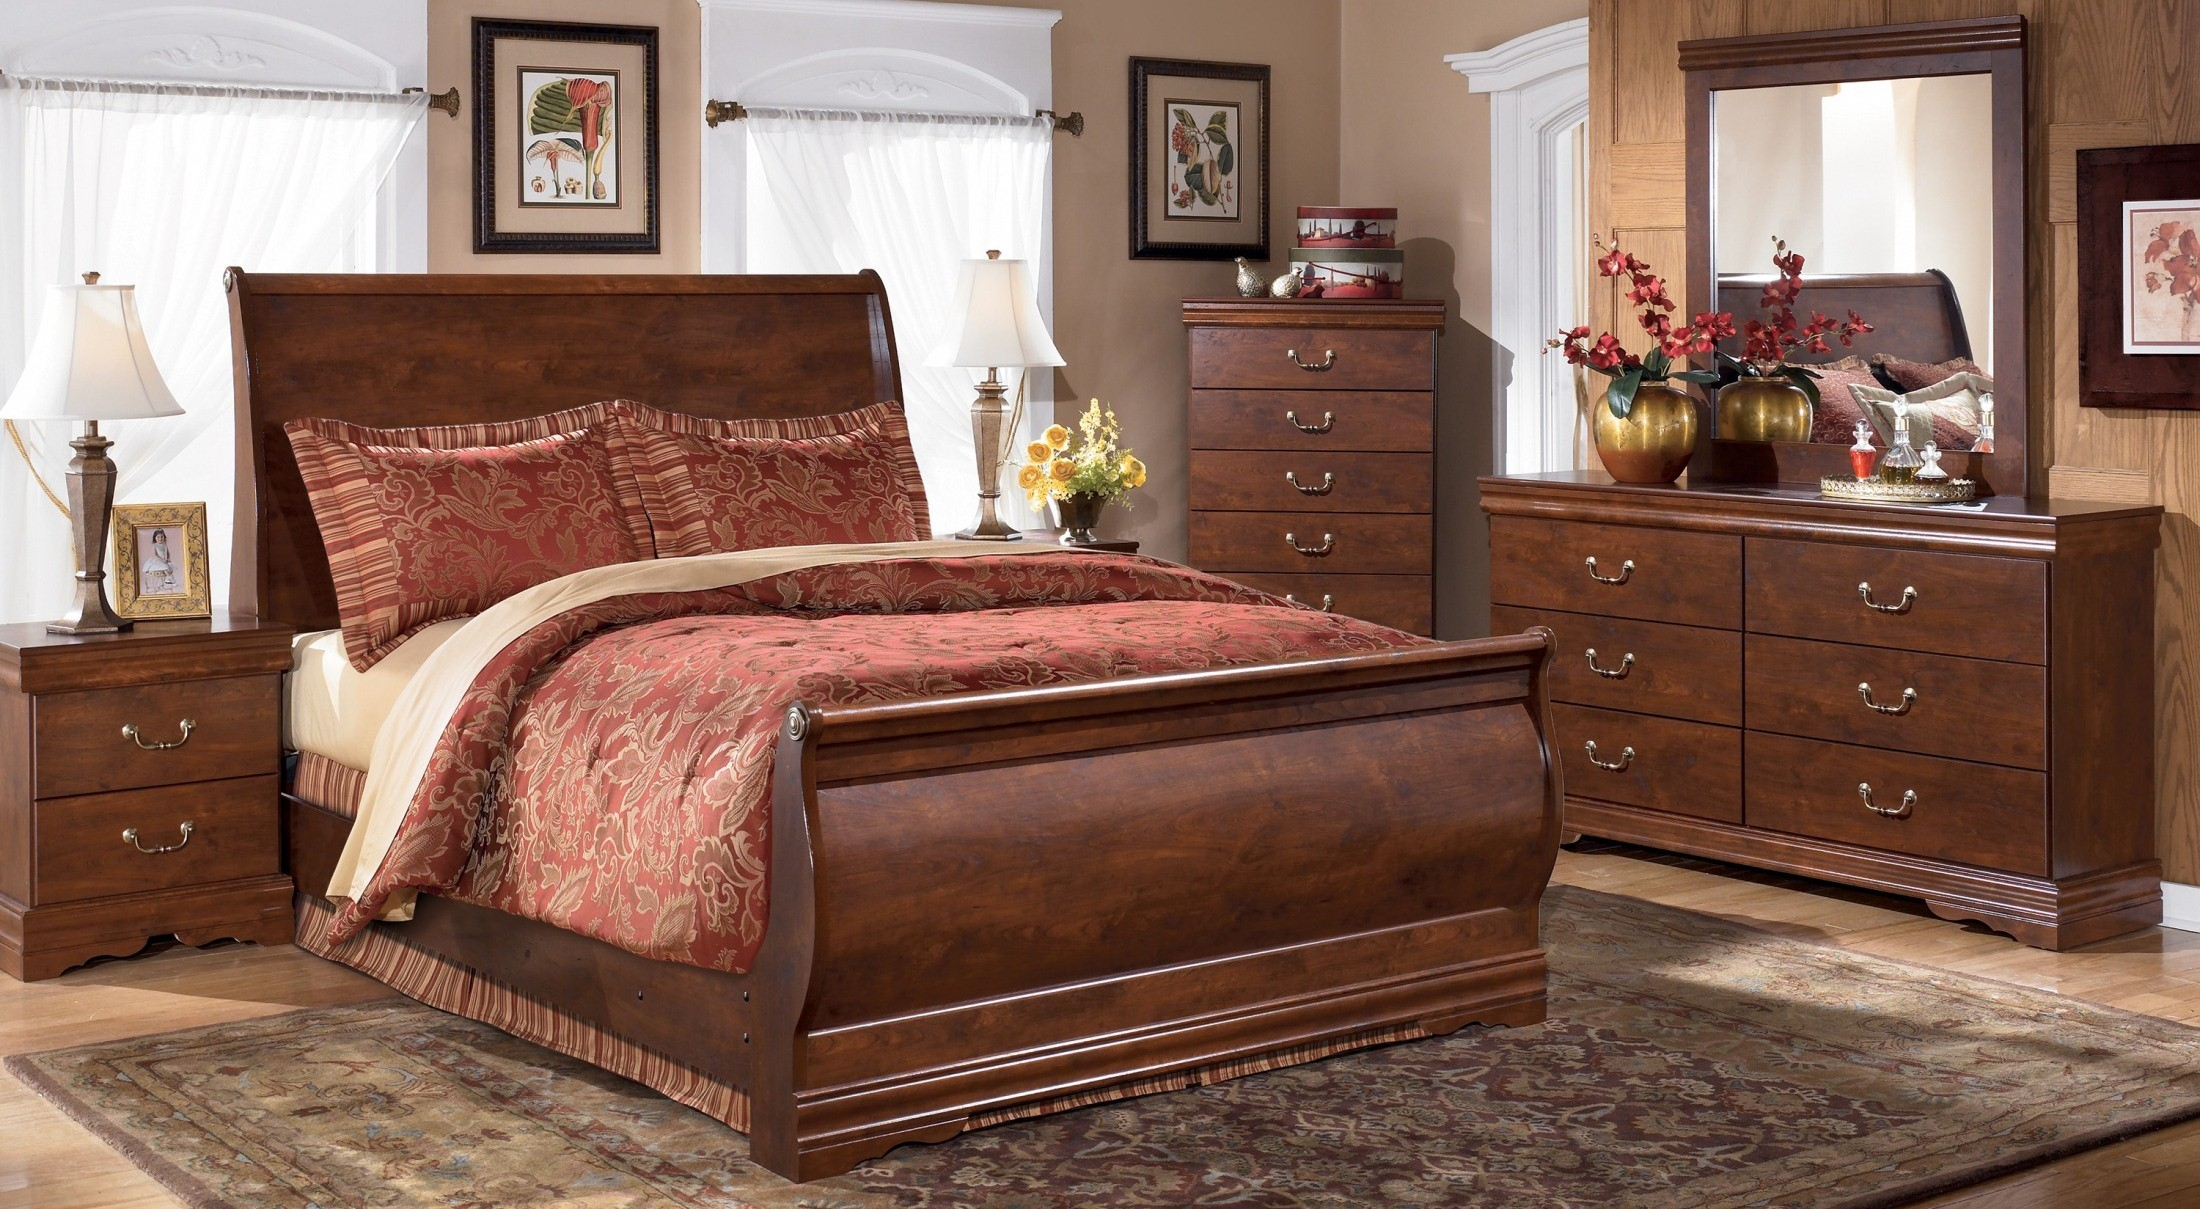 wilmington bedroom set from ashley b178 77 74 96 coleman furniture